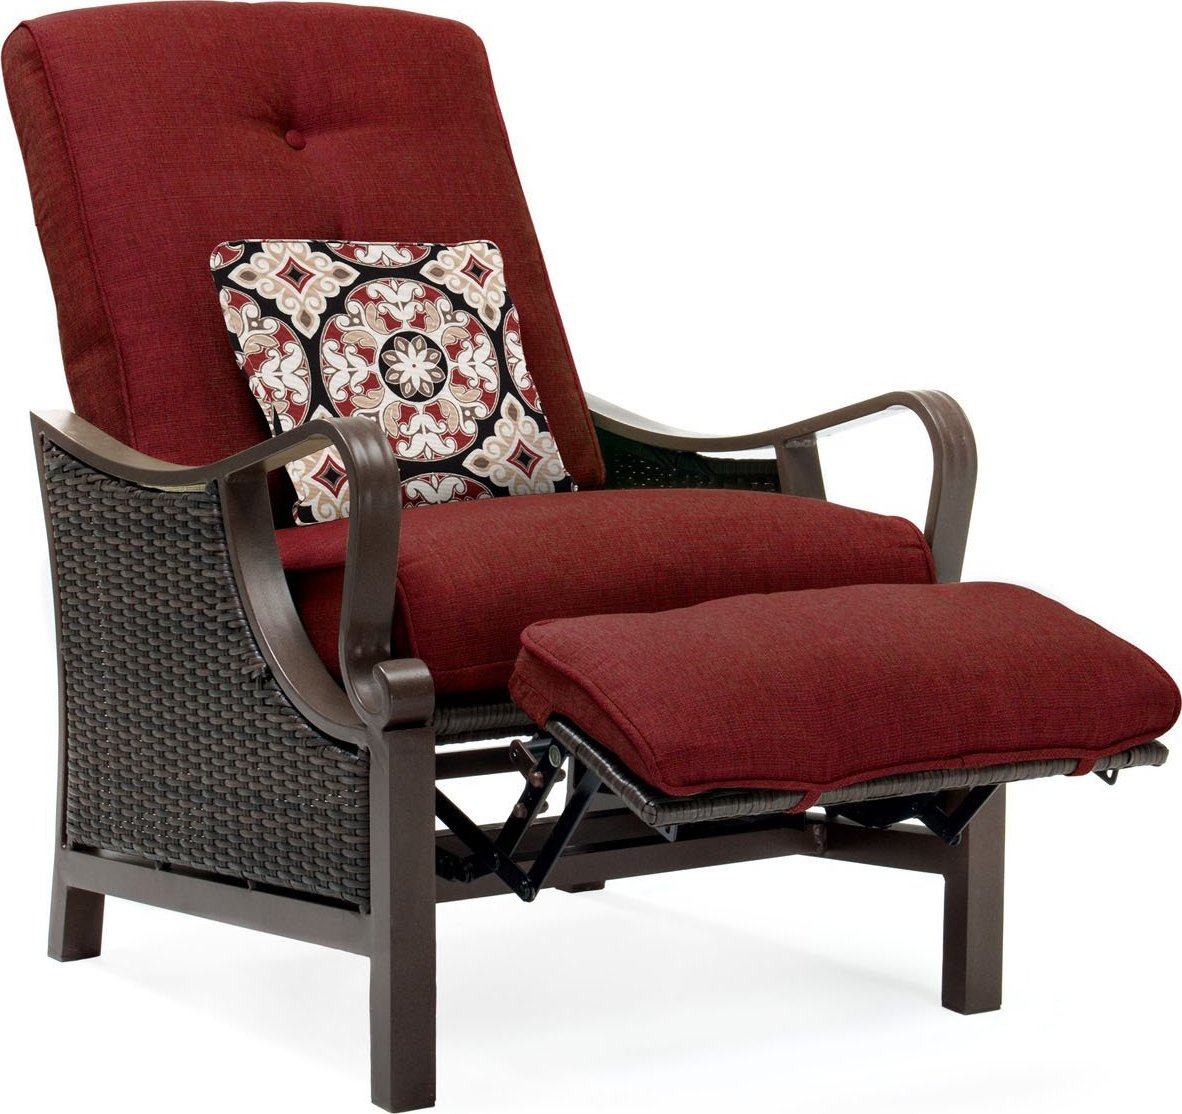 Outdoor Recliner Chair Hanover Ventura Luxury Resin Wicker Outdoor Recliner Chair